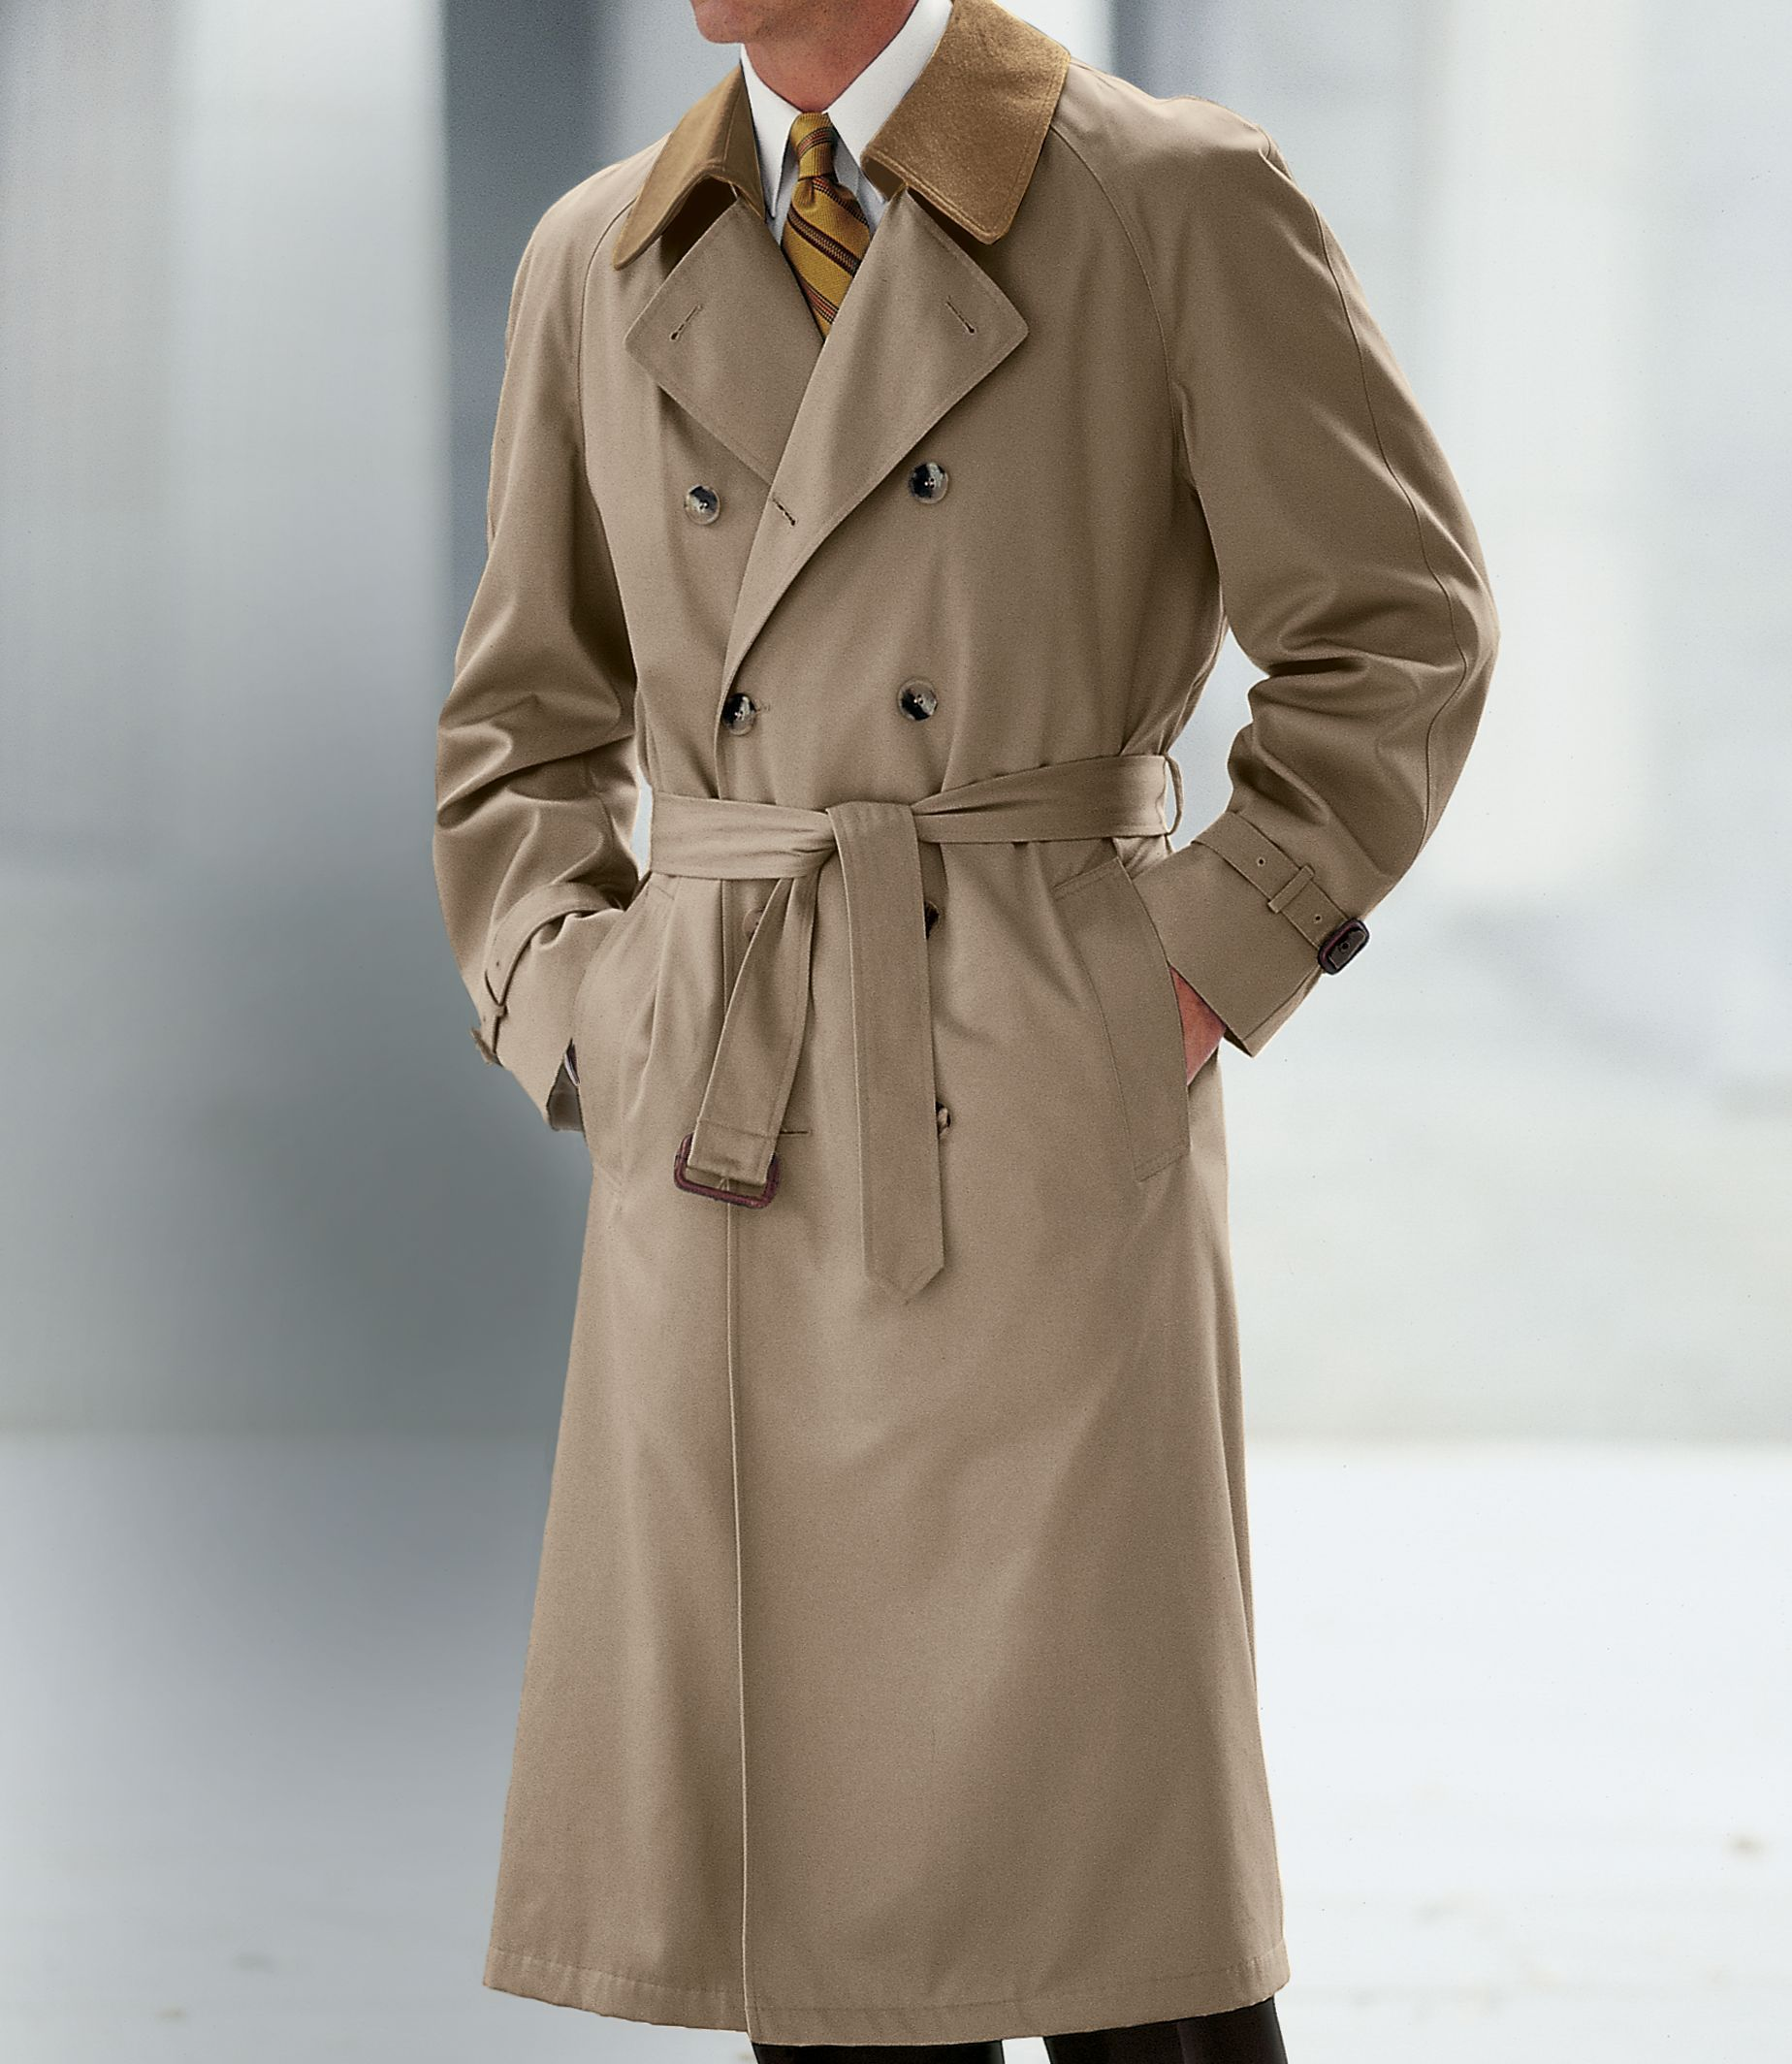 Men's Raincoats & Trenchcoats | Men's Outerwear | JoS. A. Bank ...